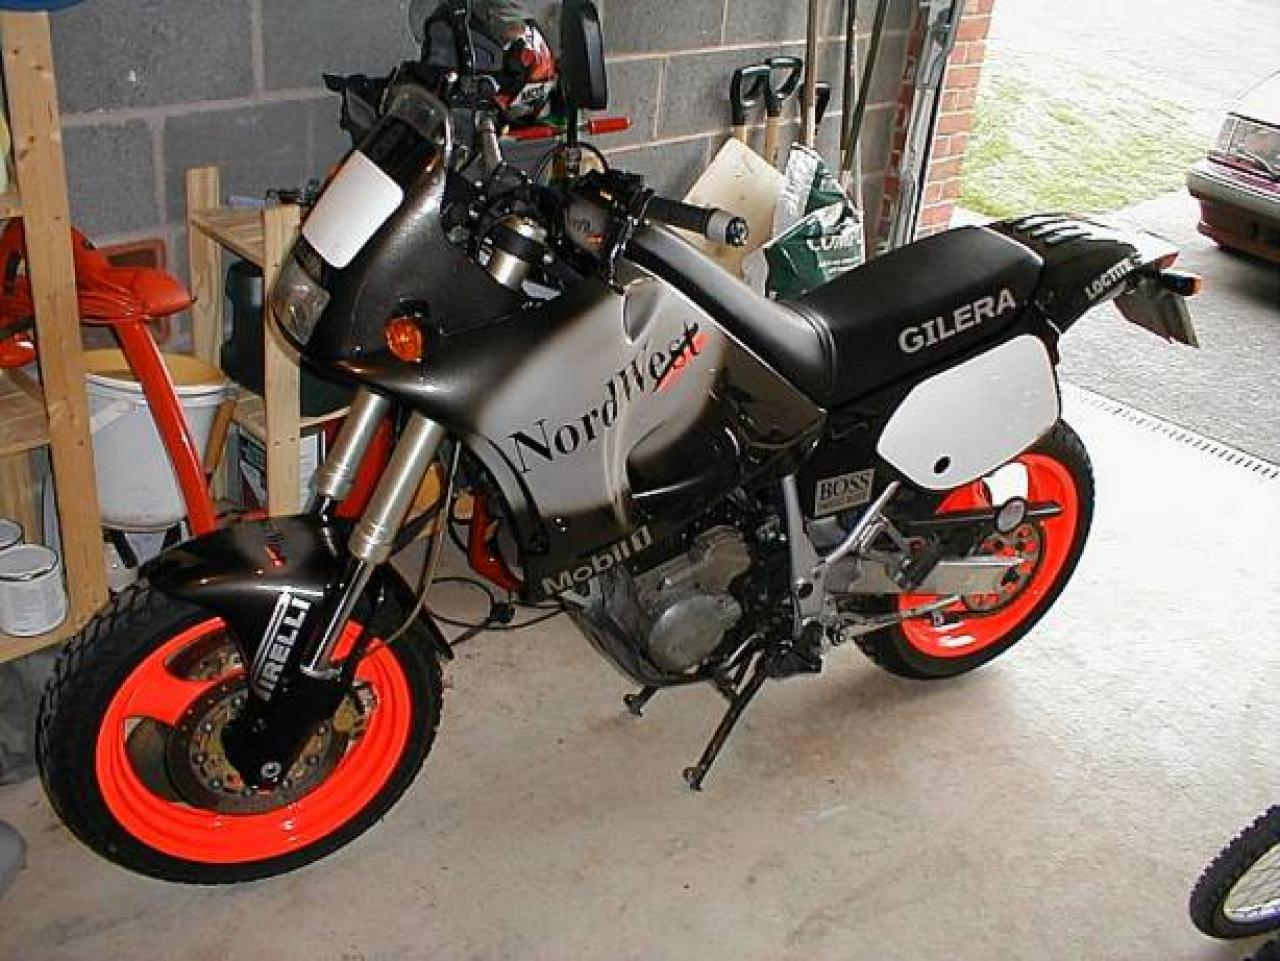 1992 Gilera 600 Nordwest (reduced effect) #10